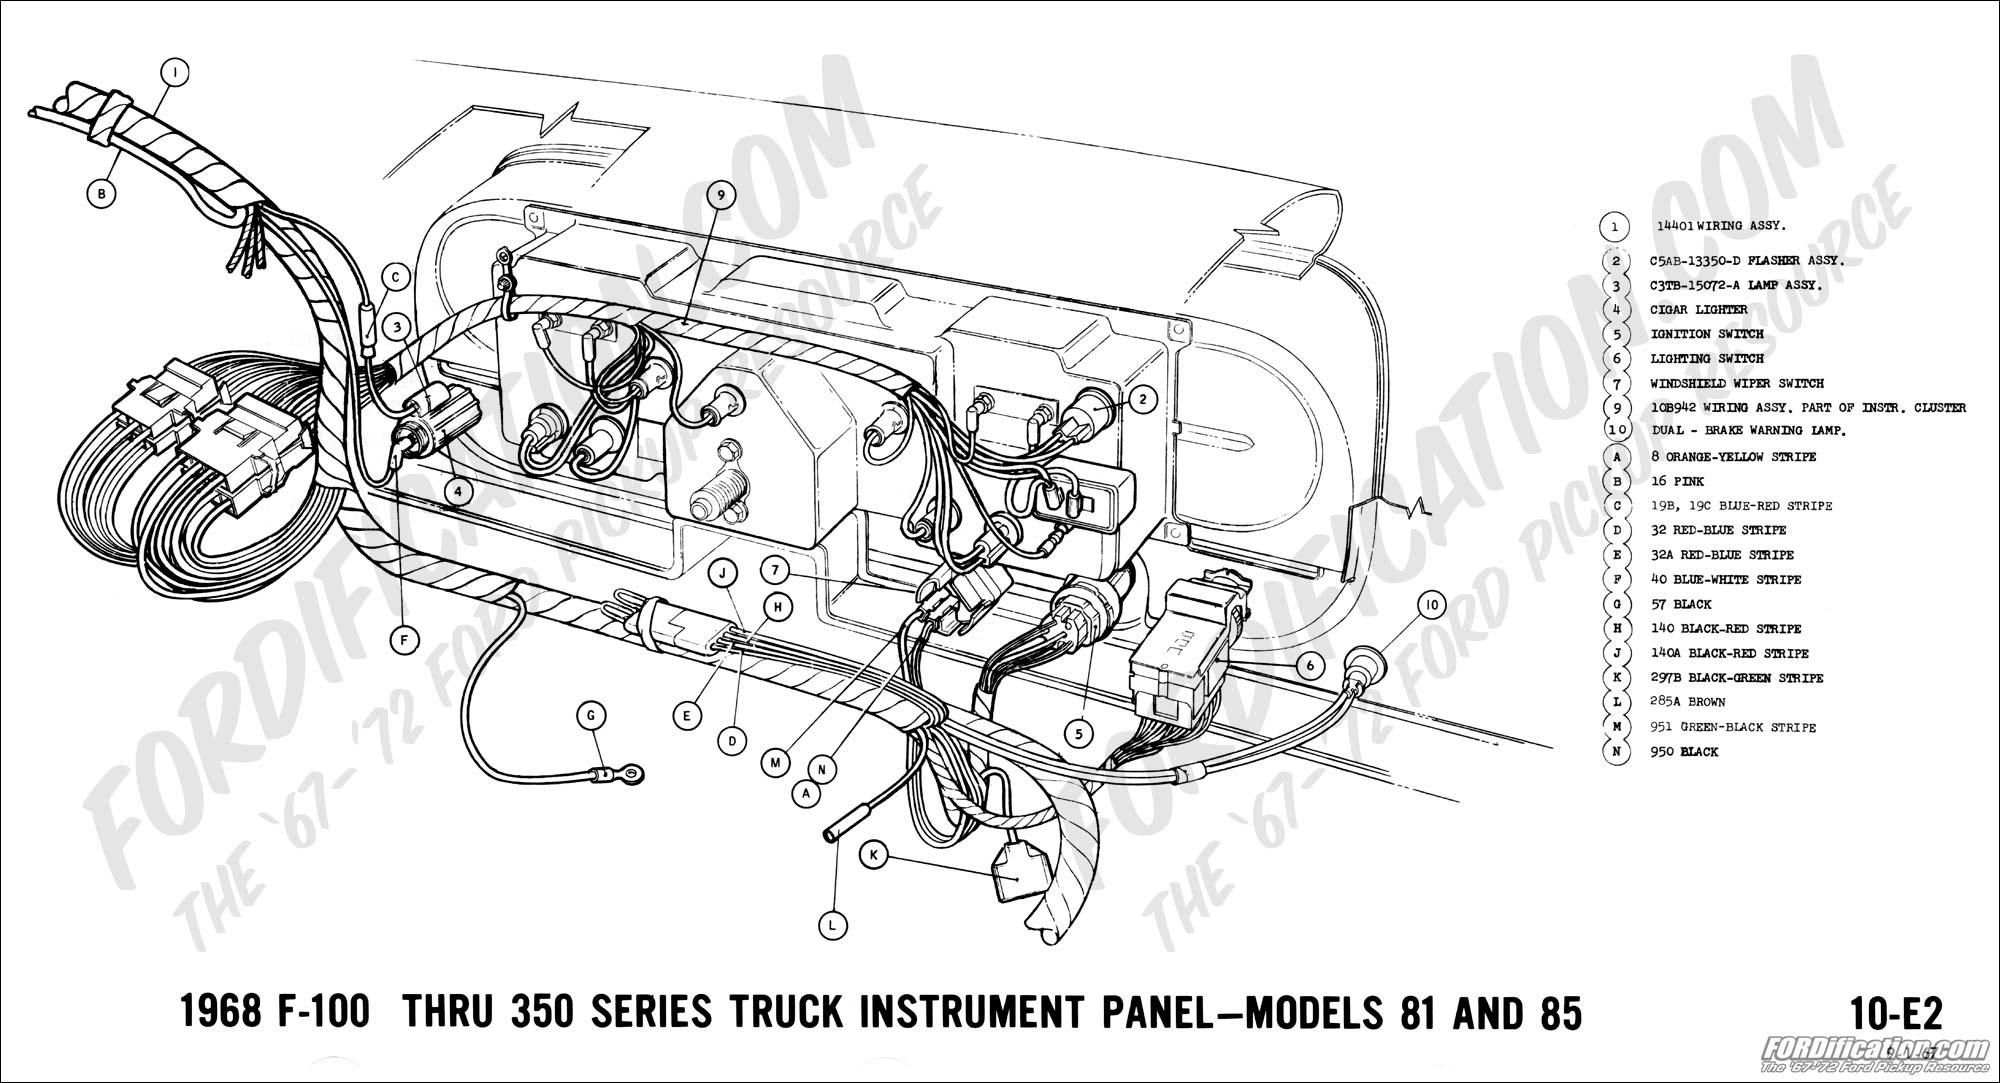 Ford Truck Technical Drawings And Schematics Section H Wiring Comm Diagram For Control Switches 1968 F 100 Thru 350 Instrument Panel